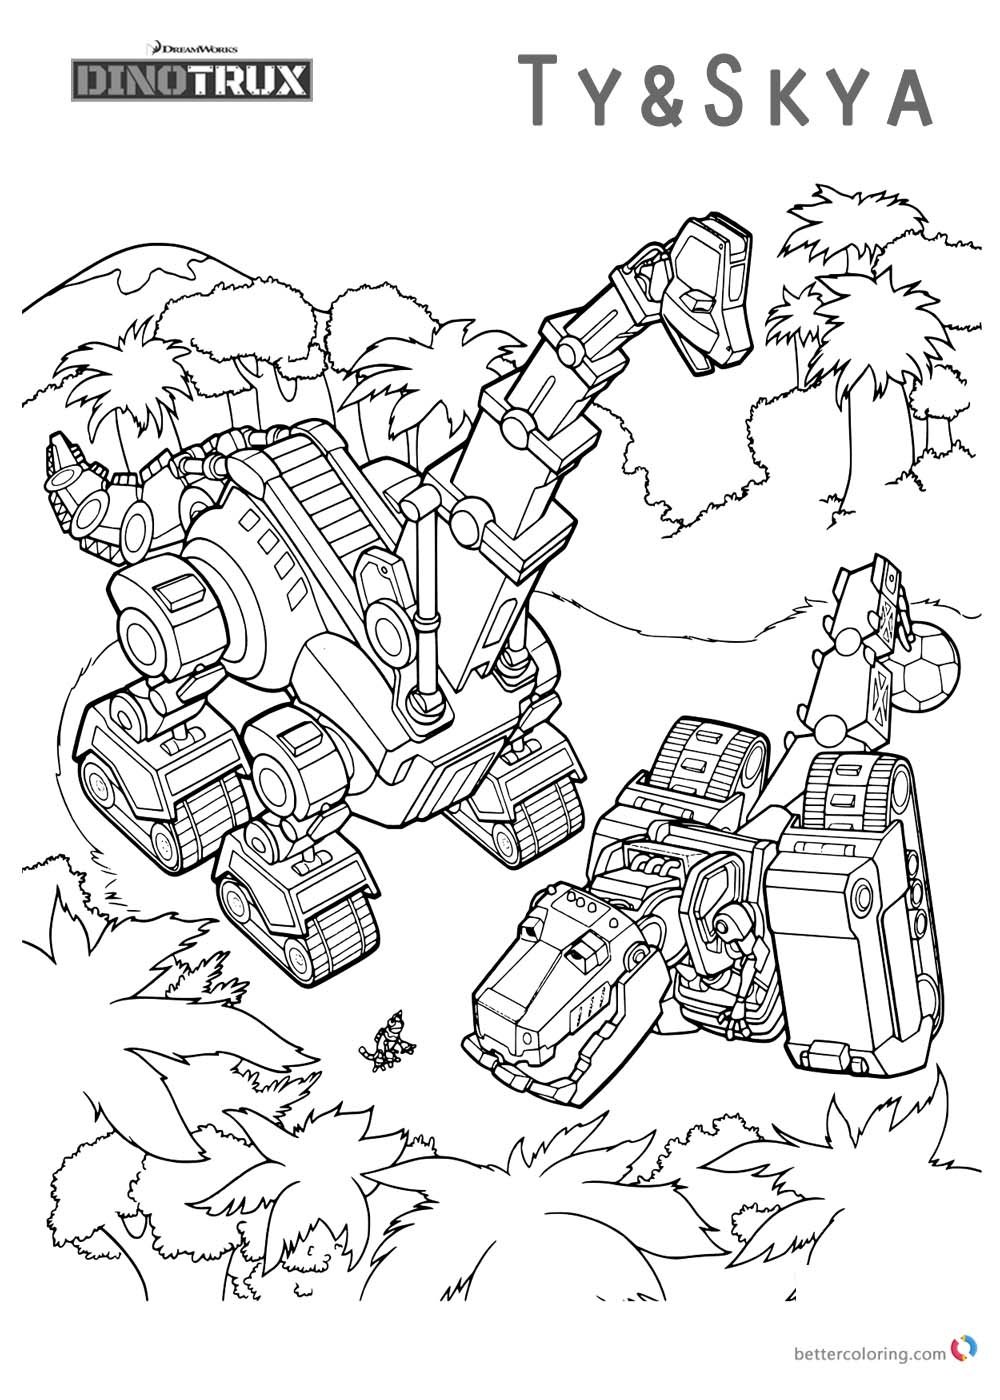 Dinotrux coloring pages Ty and Skya printable